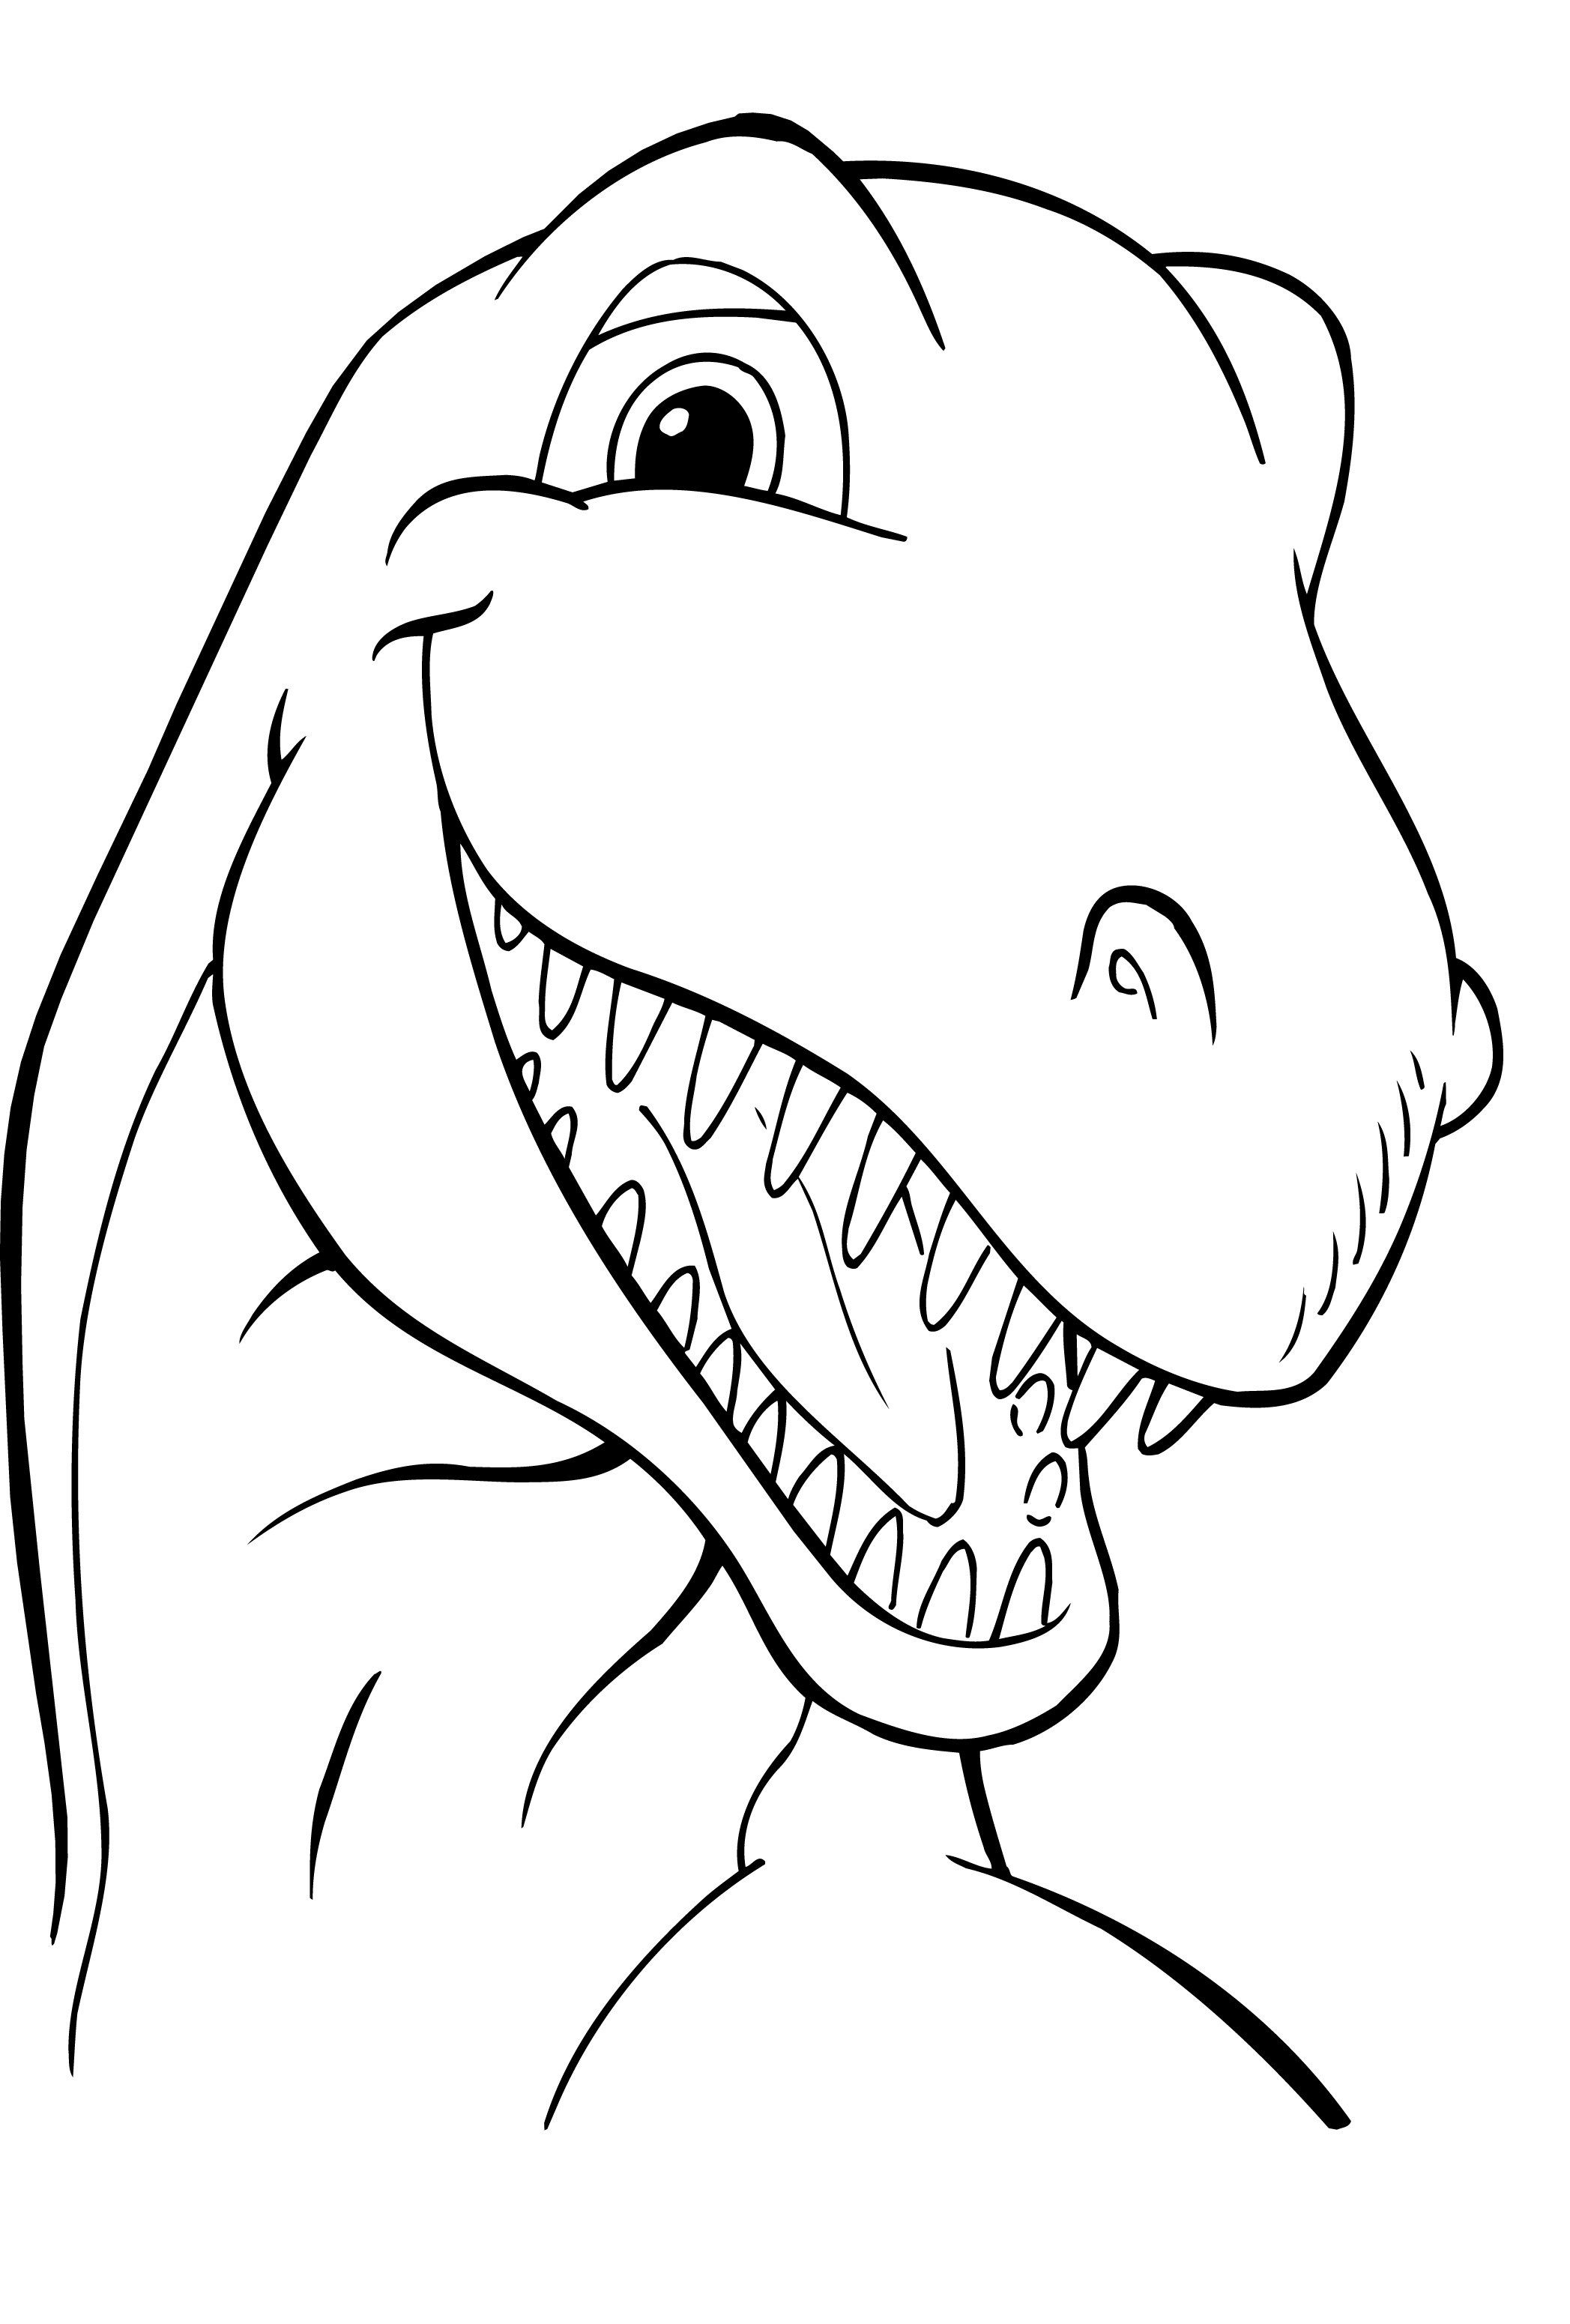 Dinosaur coloring pages print coloring pages | Clip Art Dragons ...